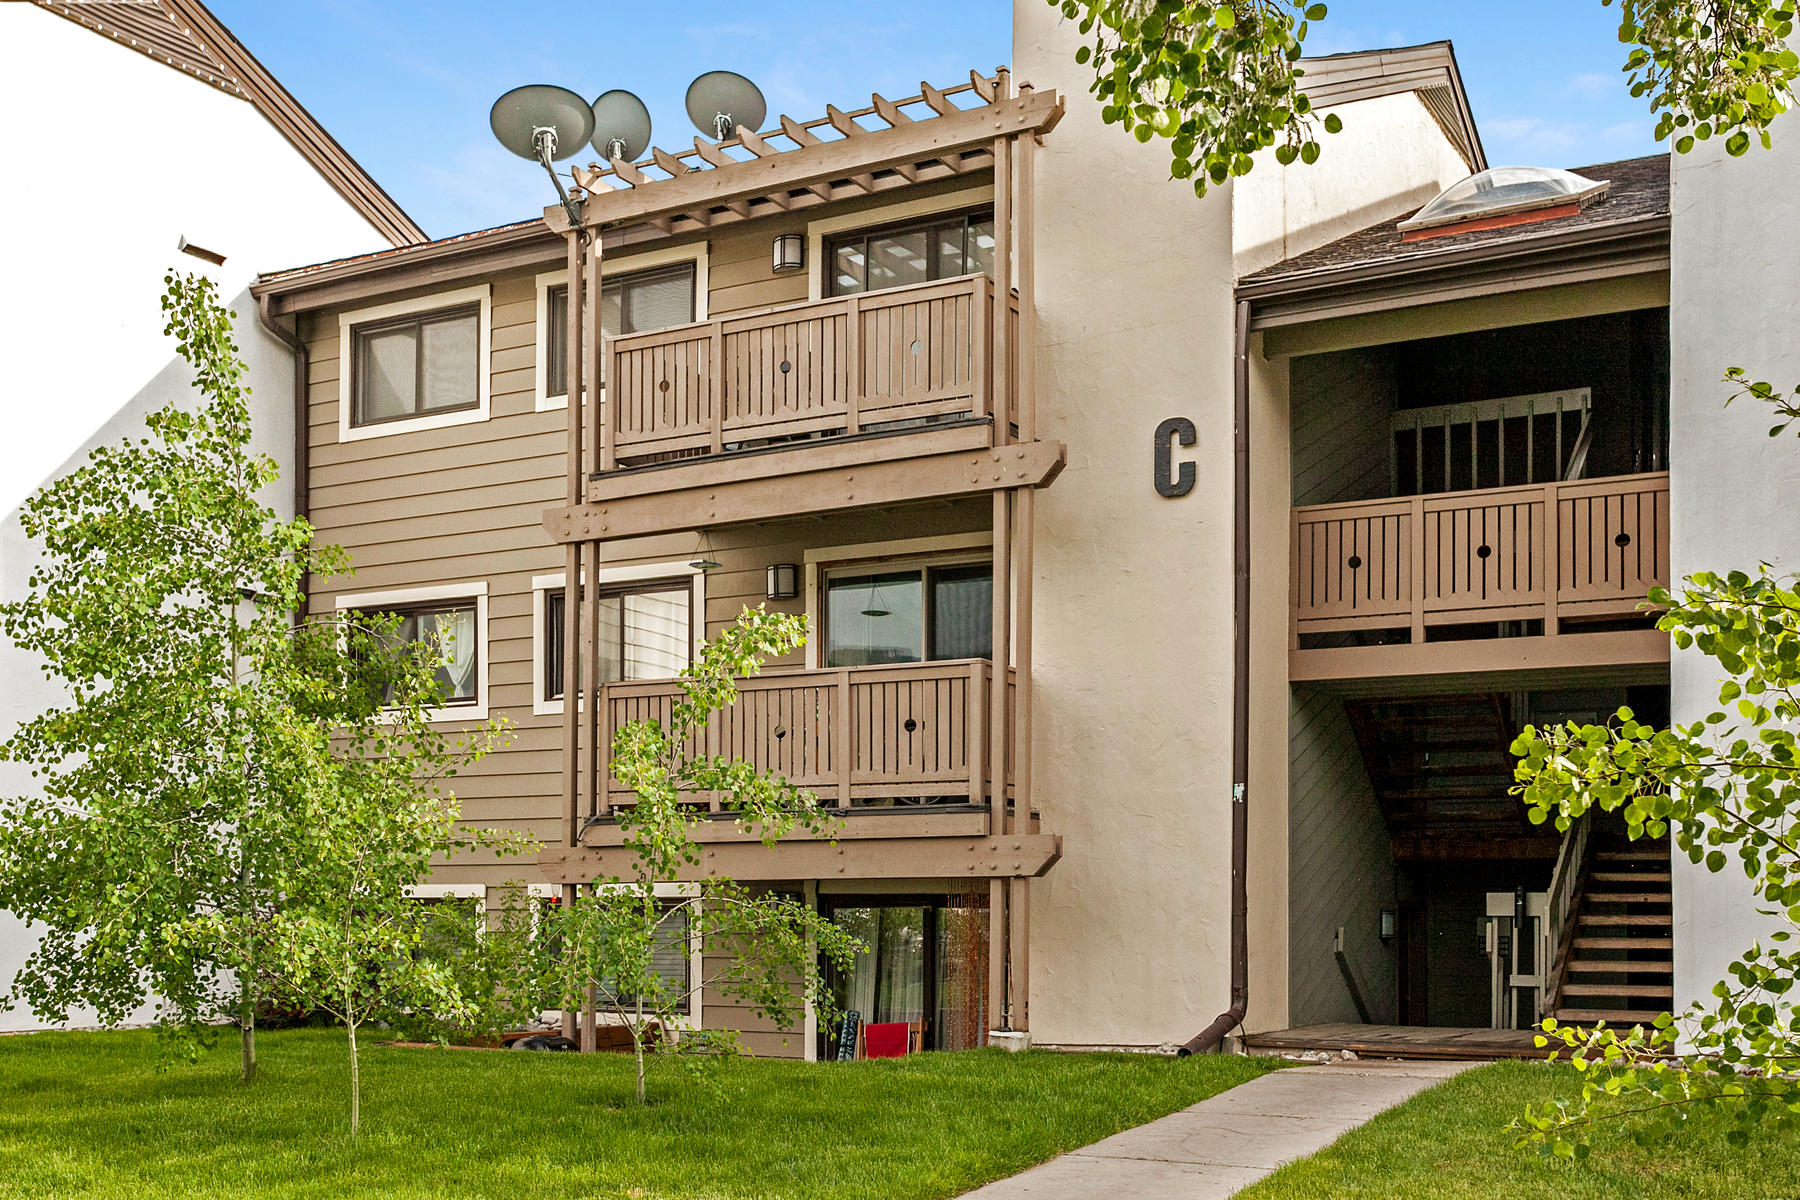 Condominium for Active at Walking distance to Beaver Creek 998 Beaver Creek Blvd #C205 Avon, Colorado 81620 United States